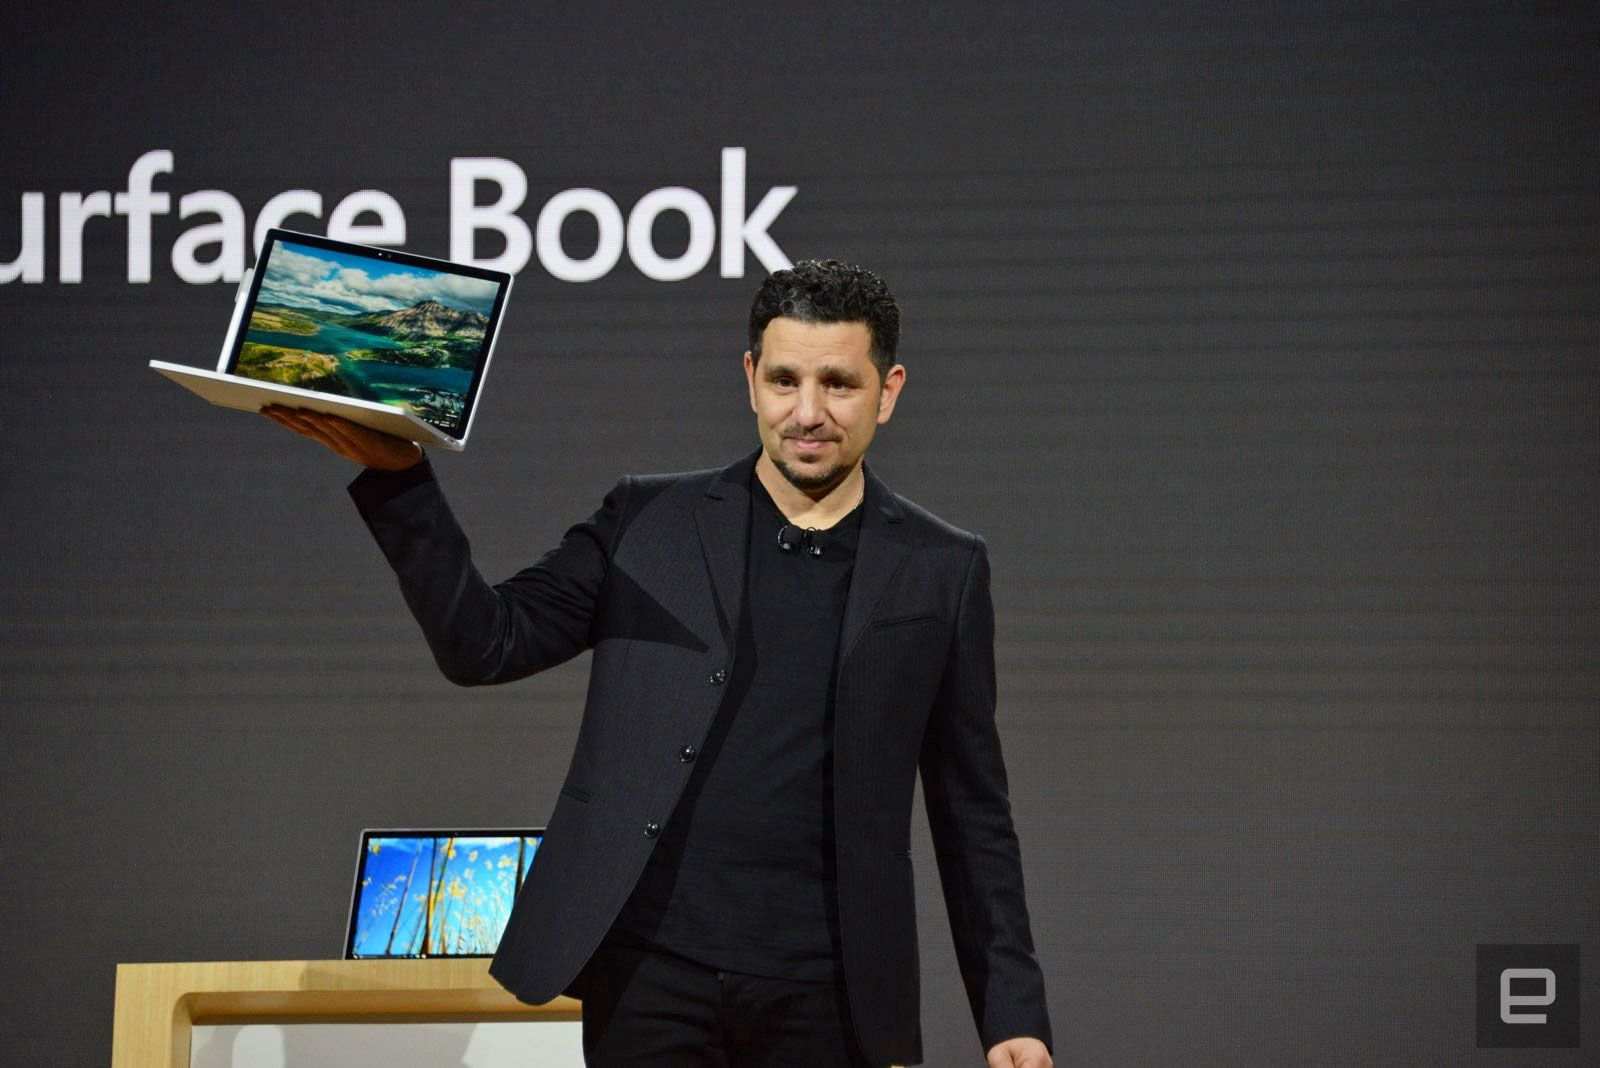 The laptop/tablet hybrid also promises 16 hours of battery life.